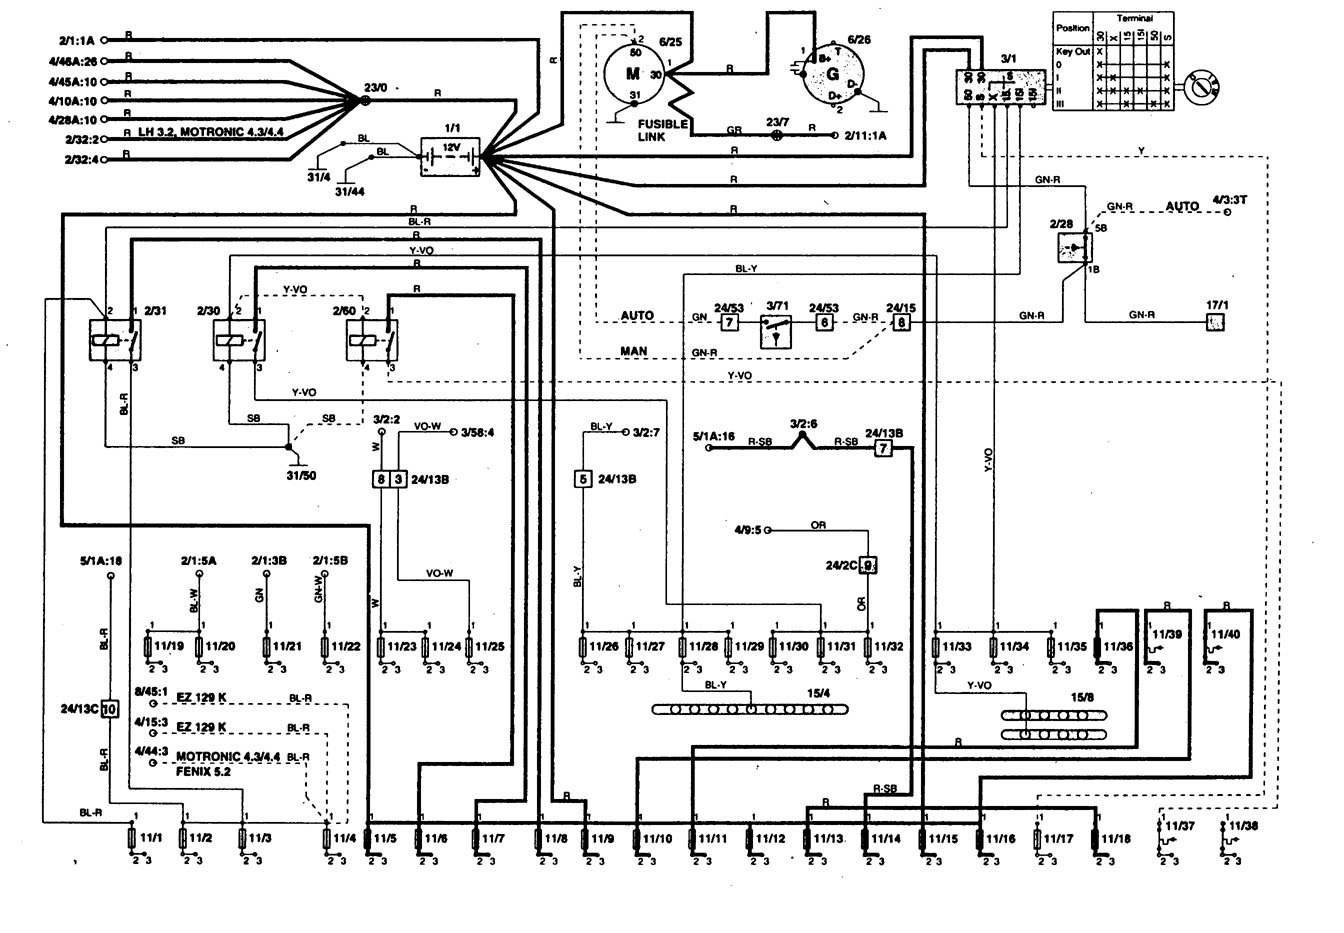 Volvo 940 Electrical Lock Wire Diagrams • Wiring Diagram